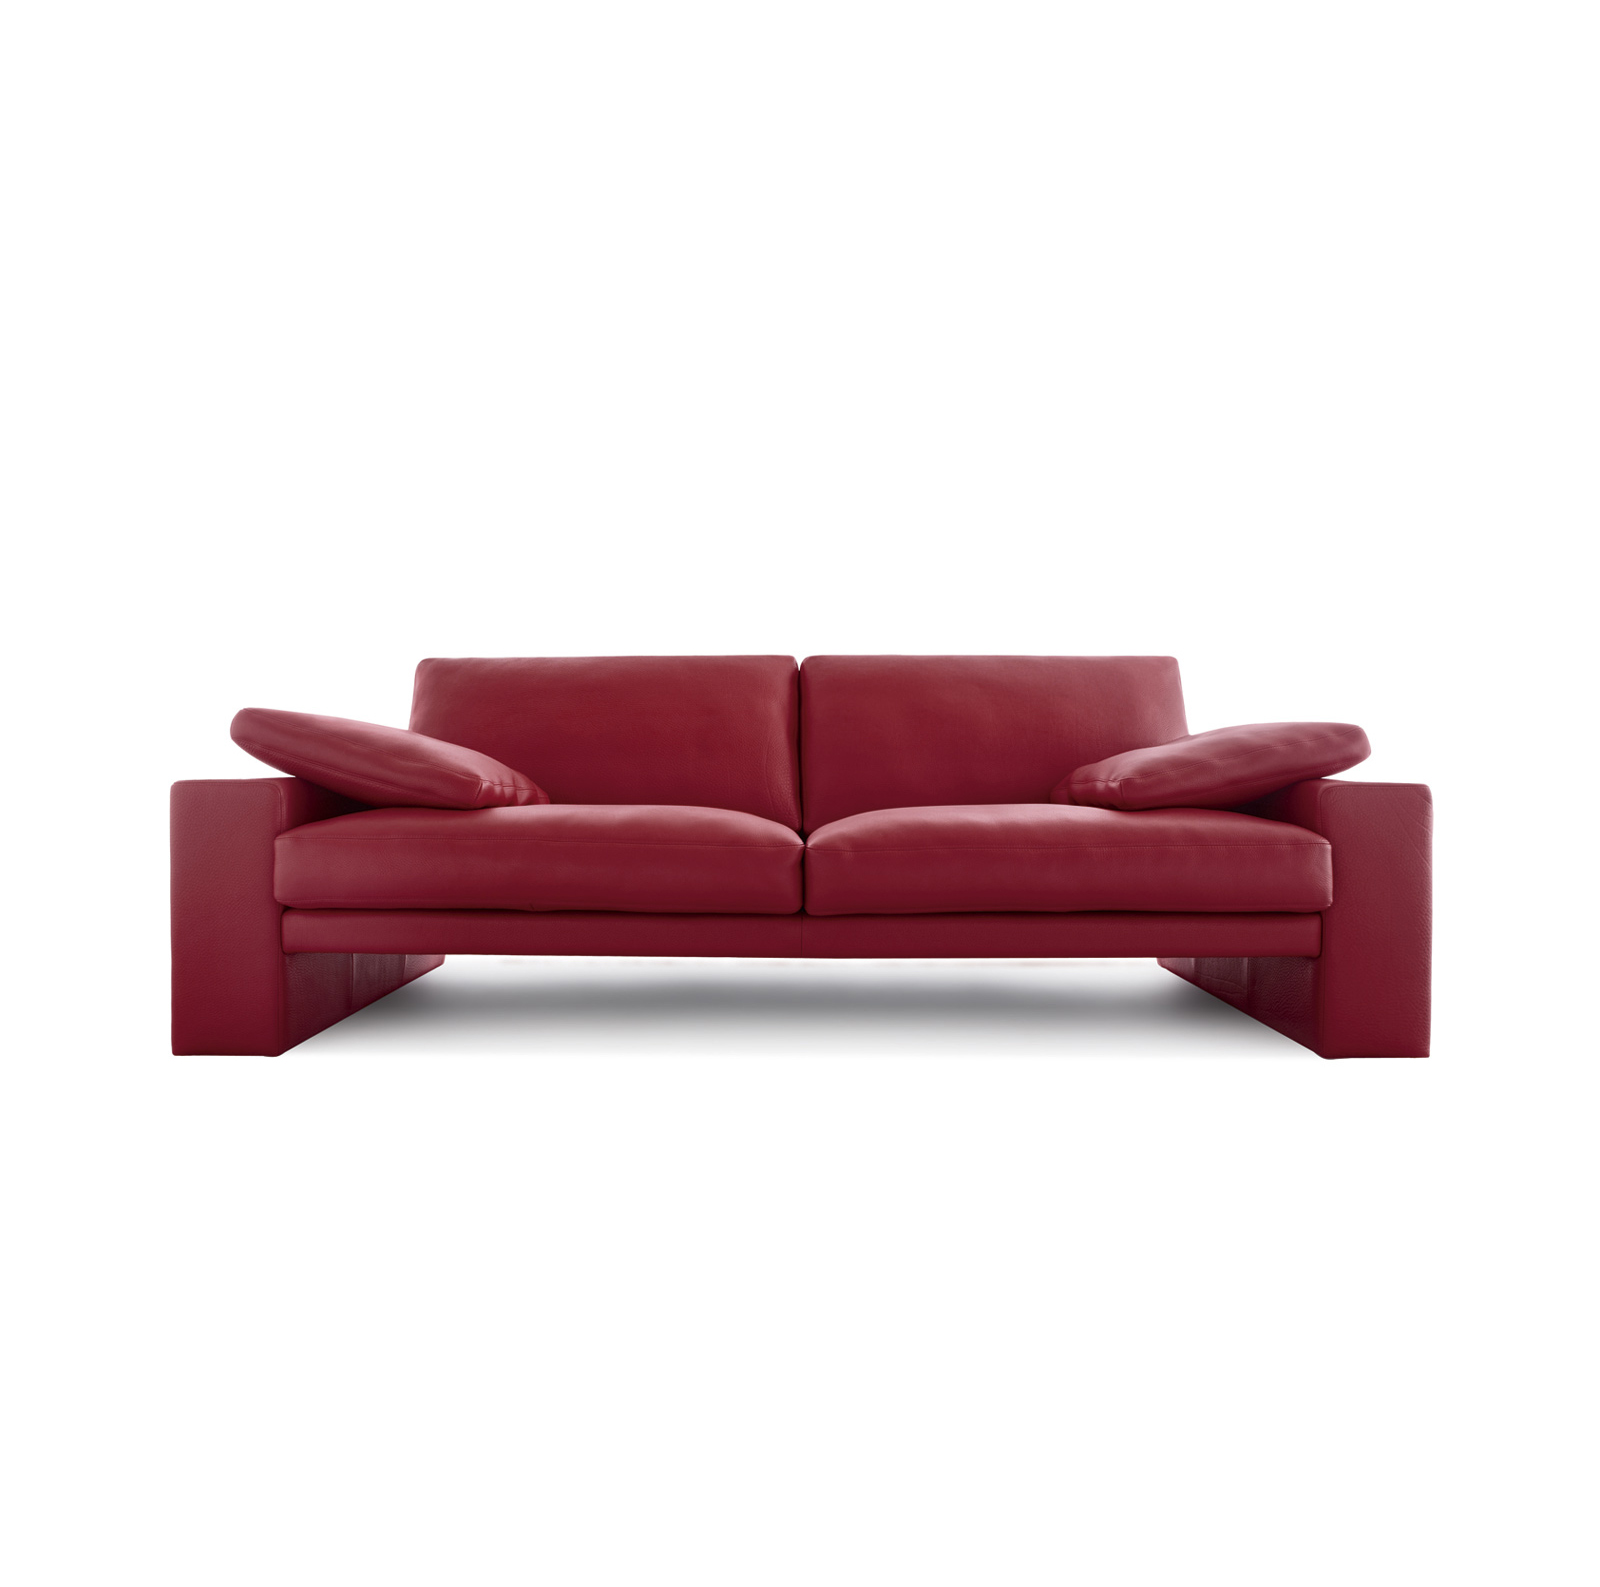 Full Size of Erpo Sofa Cl100 Boschung Grau Stoff Big Poco Liege Polster Kaufen Barock Alternatives Inhofer Abnehmbarer Bezug Türkis Kinderzimmer Ligne Roset Home Affaire Sofa Erpo Sofa